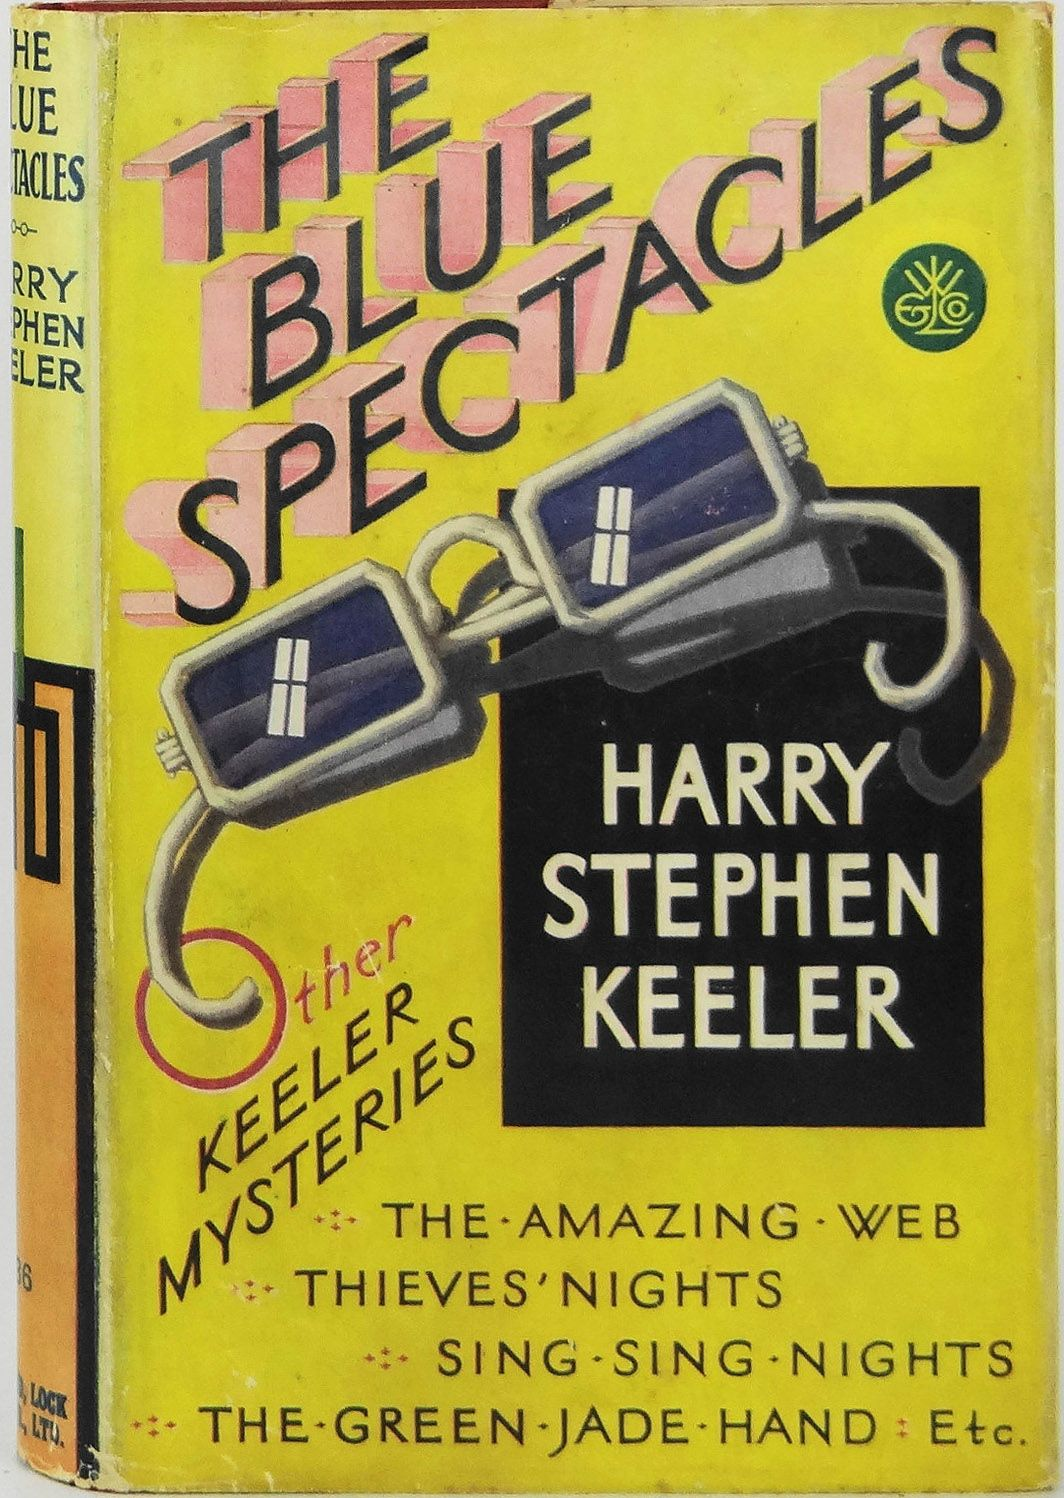 Agatha Christie Libros Gratis The Blue Spectacles By Harry Stephen Keeler Harry